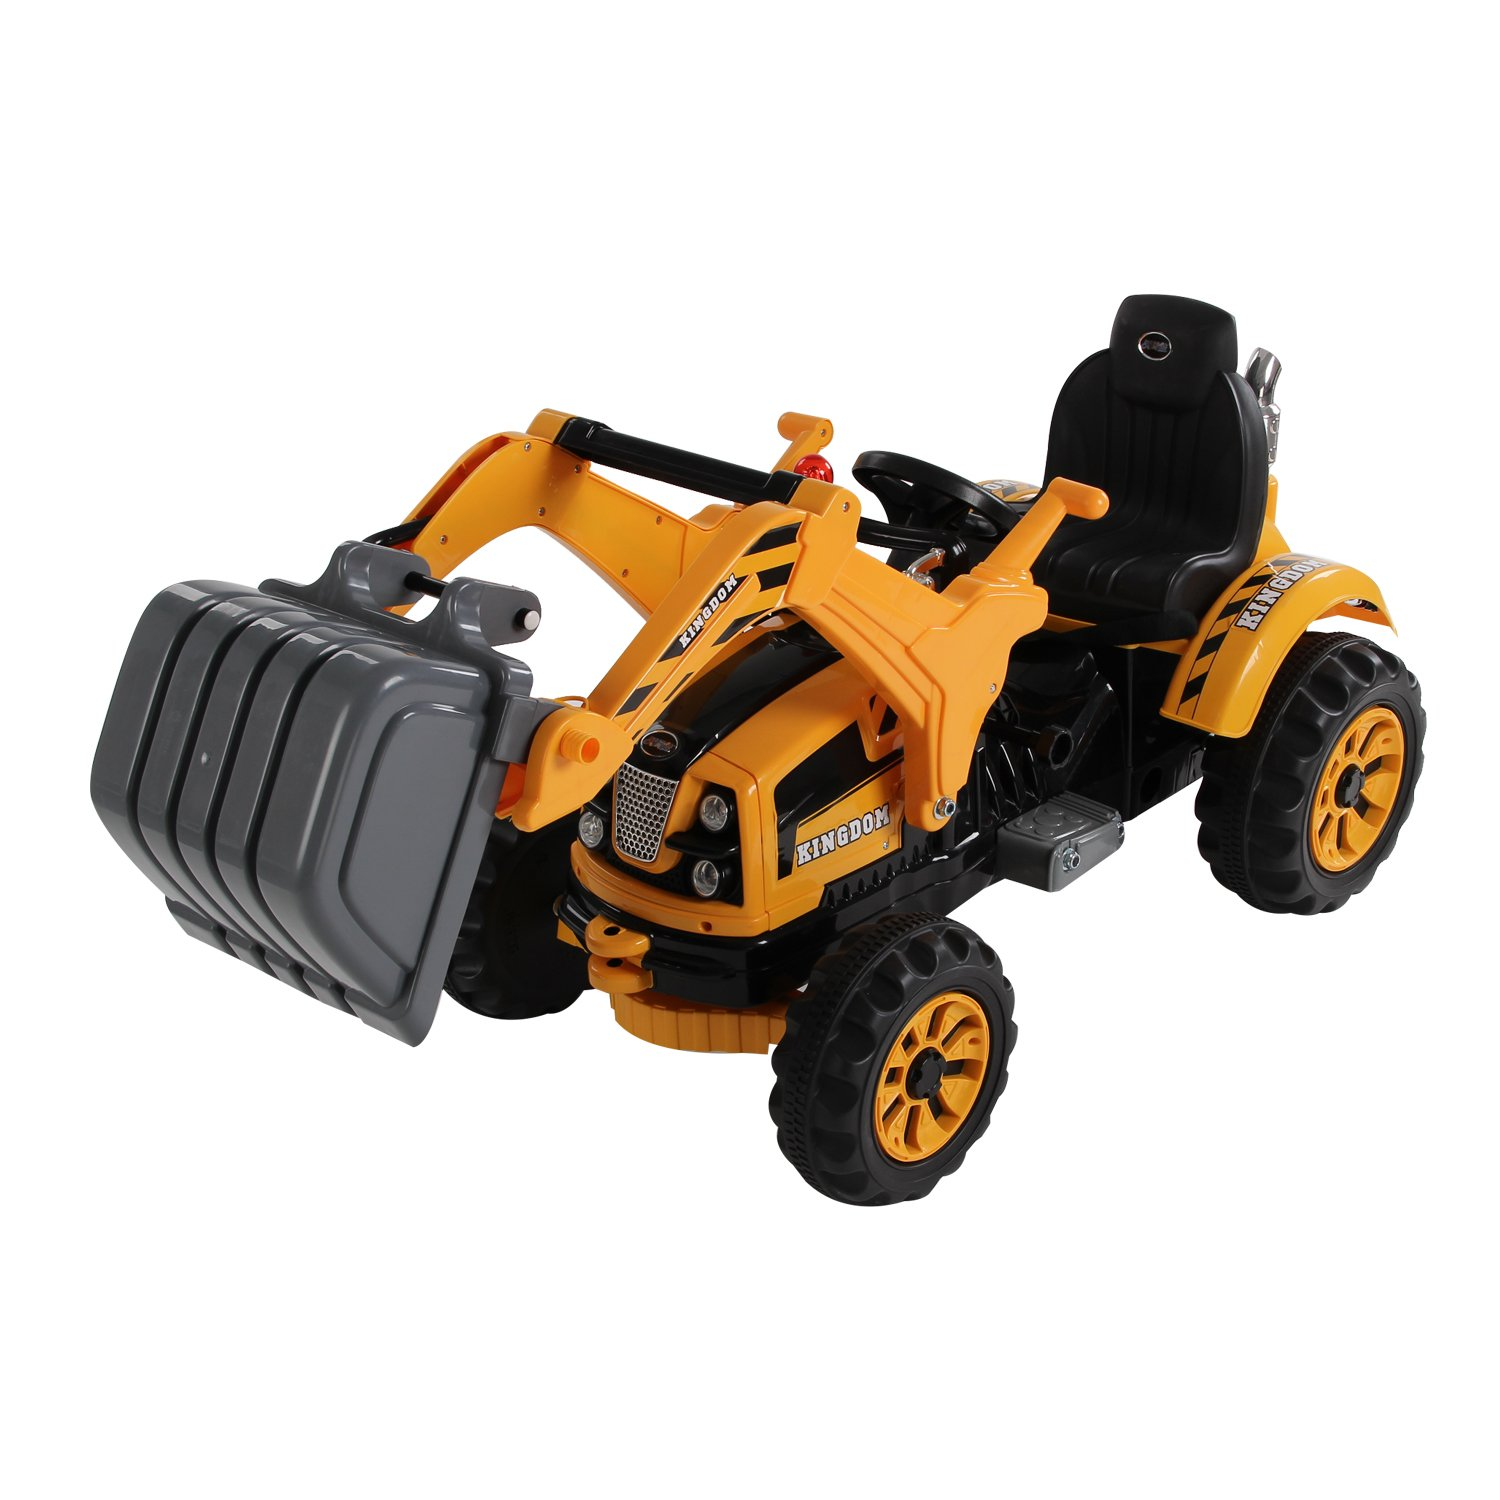 jcb battery operated ride on toy tractor loader digger for